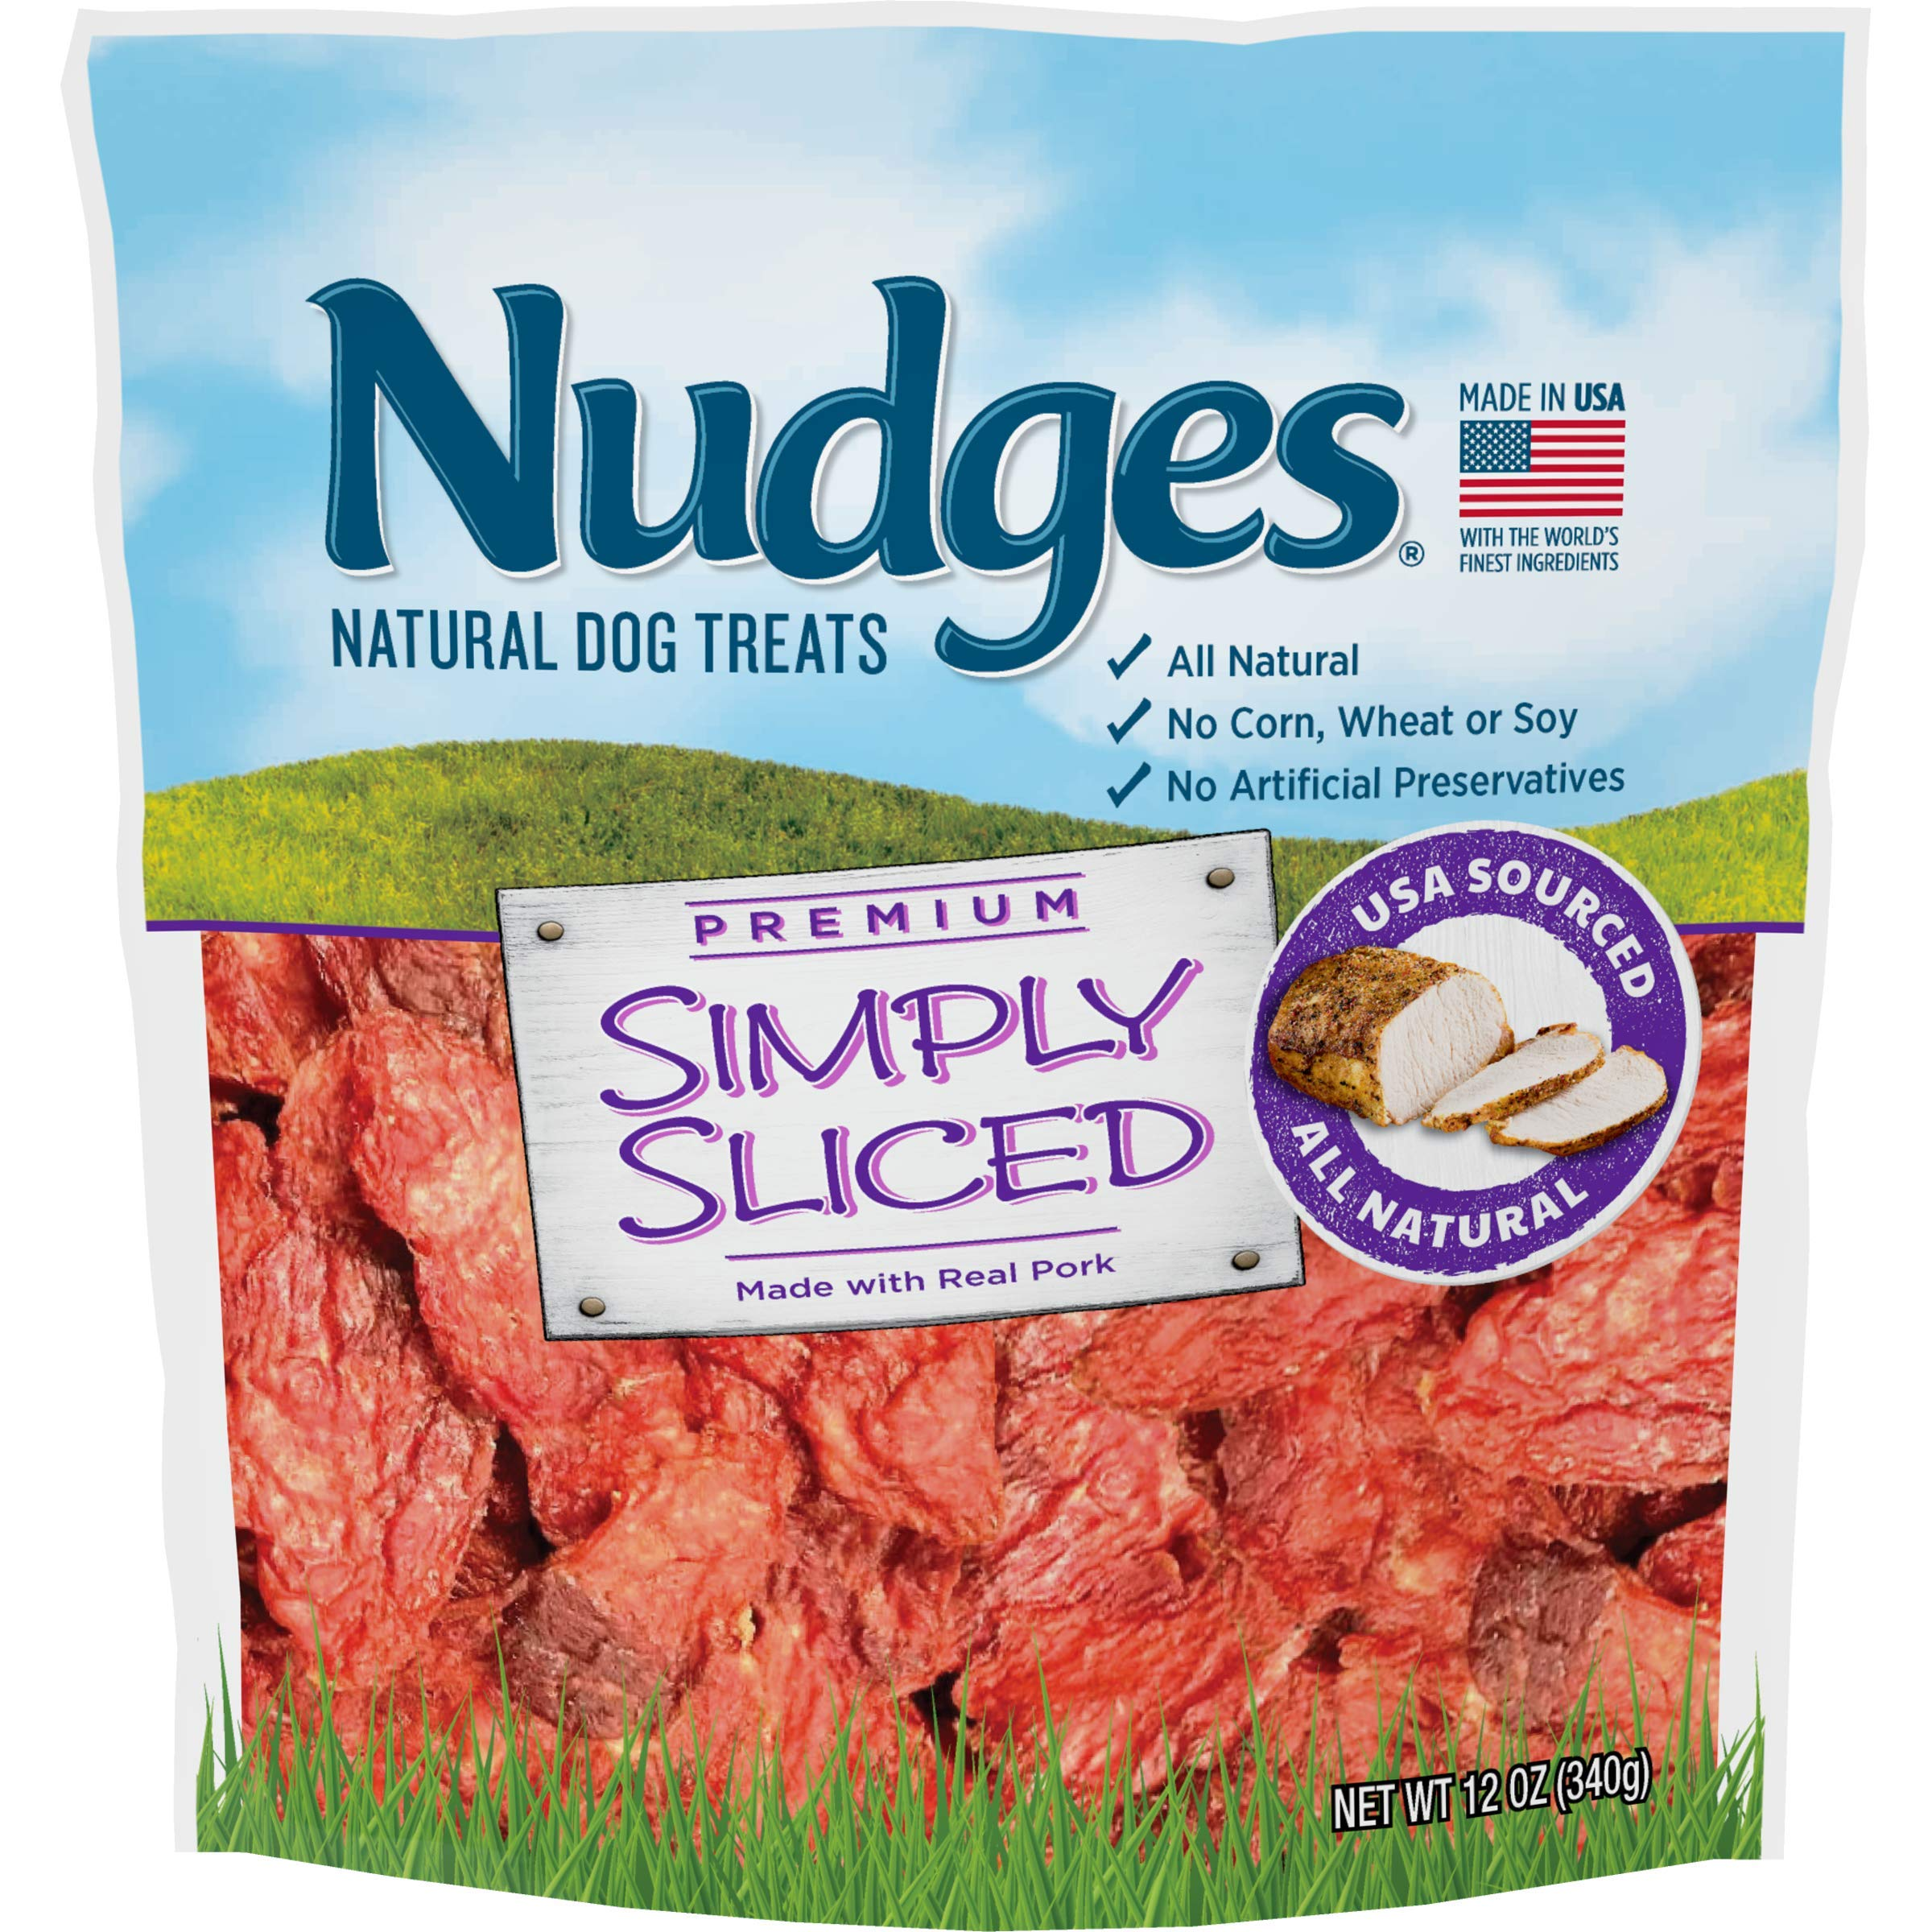 Nudges Simply Sliced Made with Real Pork Dog Treats, 12 oz by Nudges